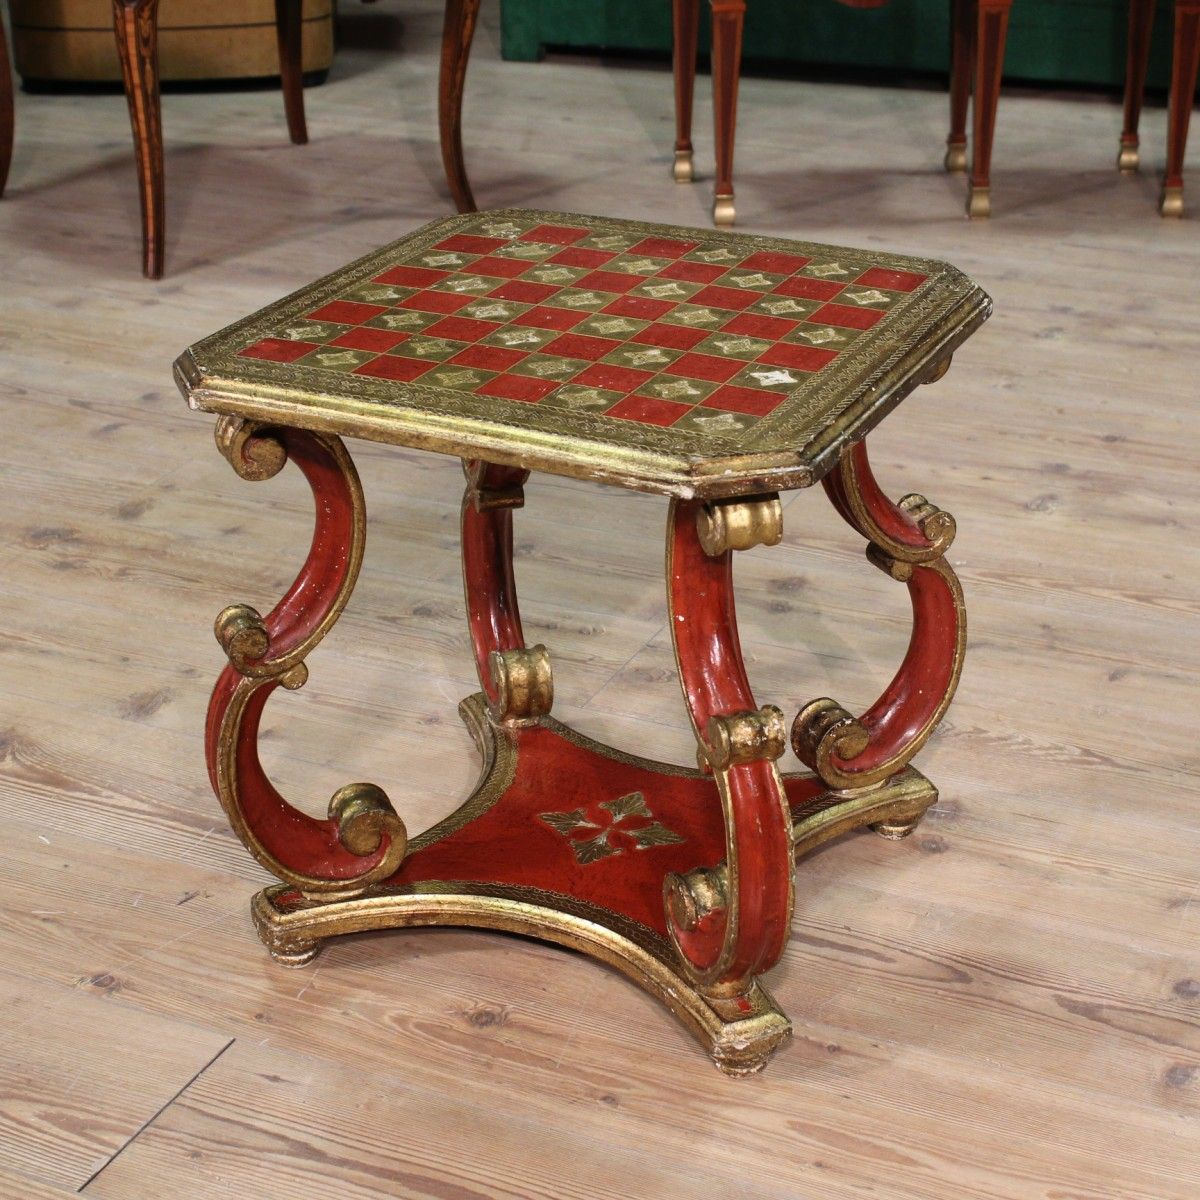 Florentine Low Table In Lacquered And Golden Wood Of The Twentieth Century.  Visit Our Website